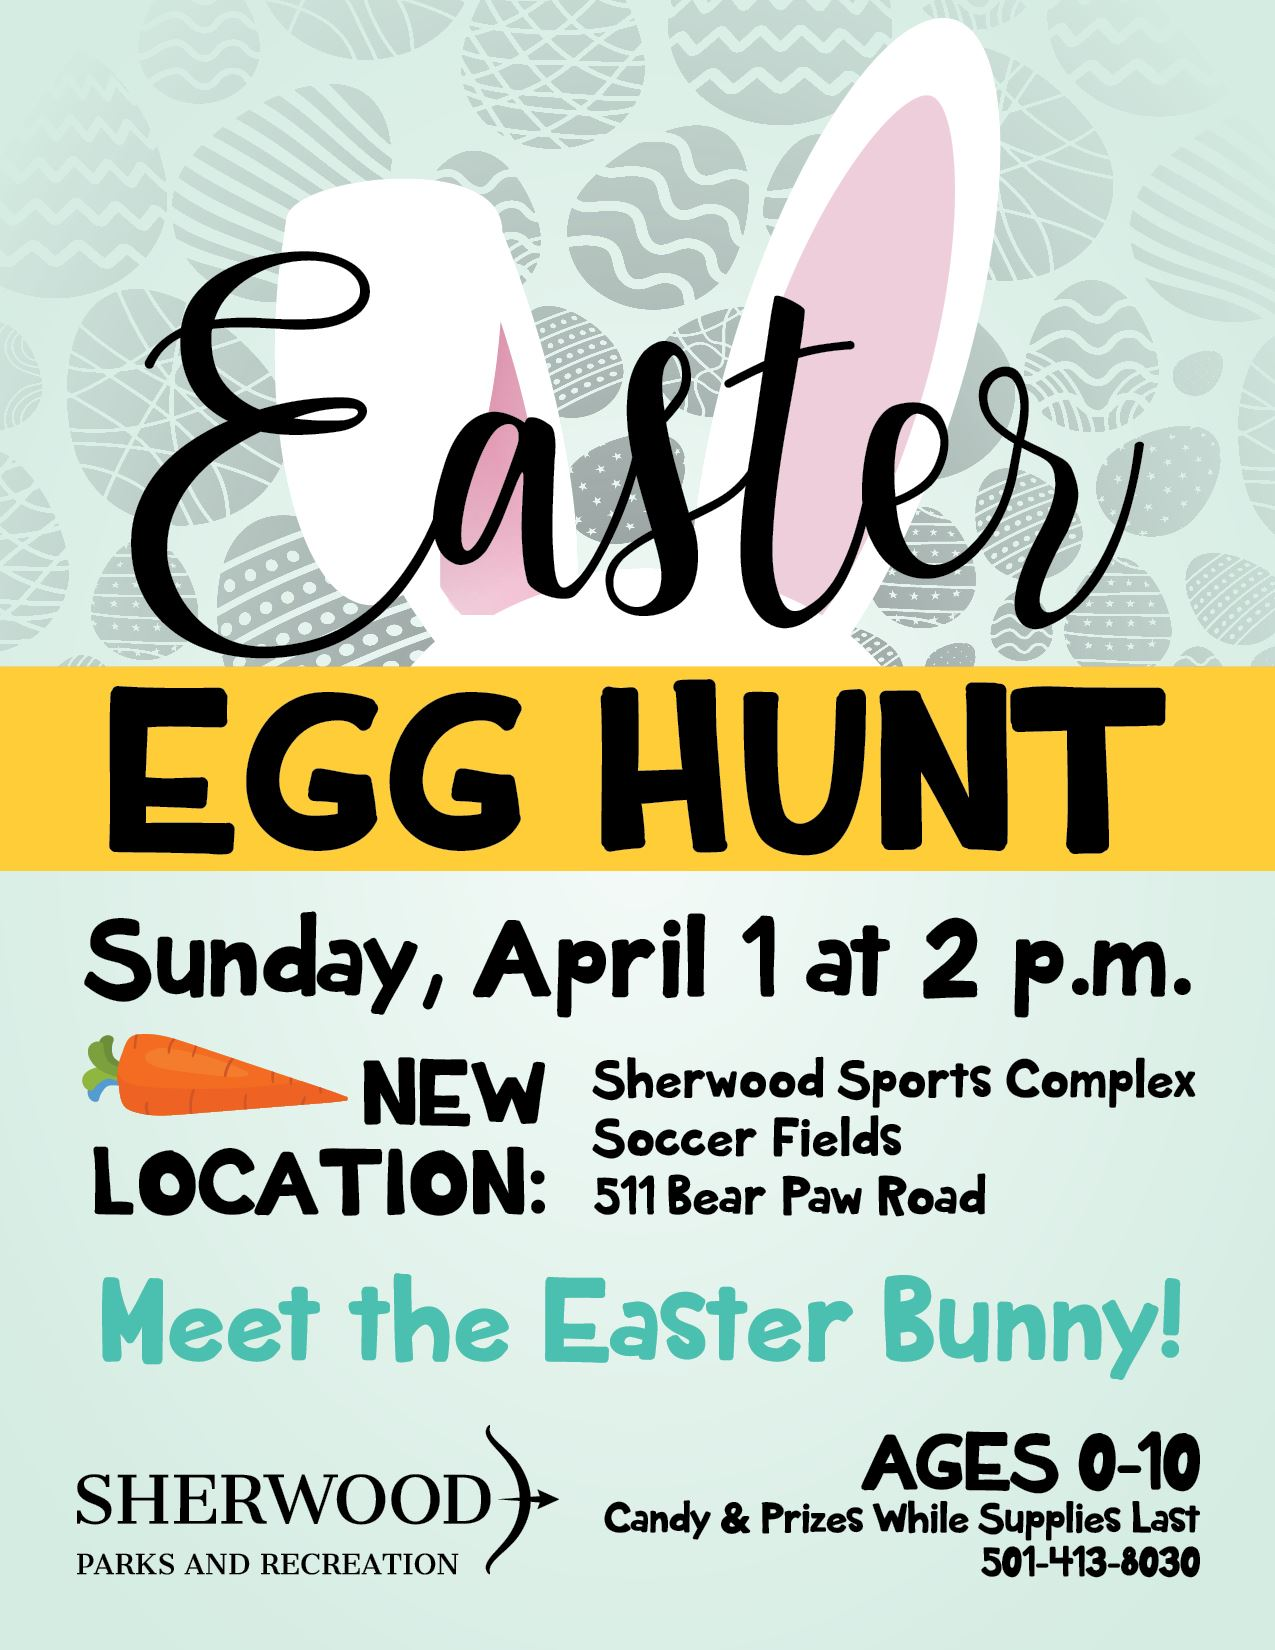 Flyer with details about Easter Egg Hunt